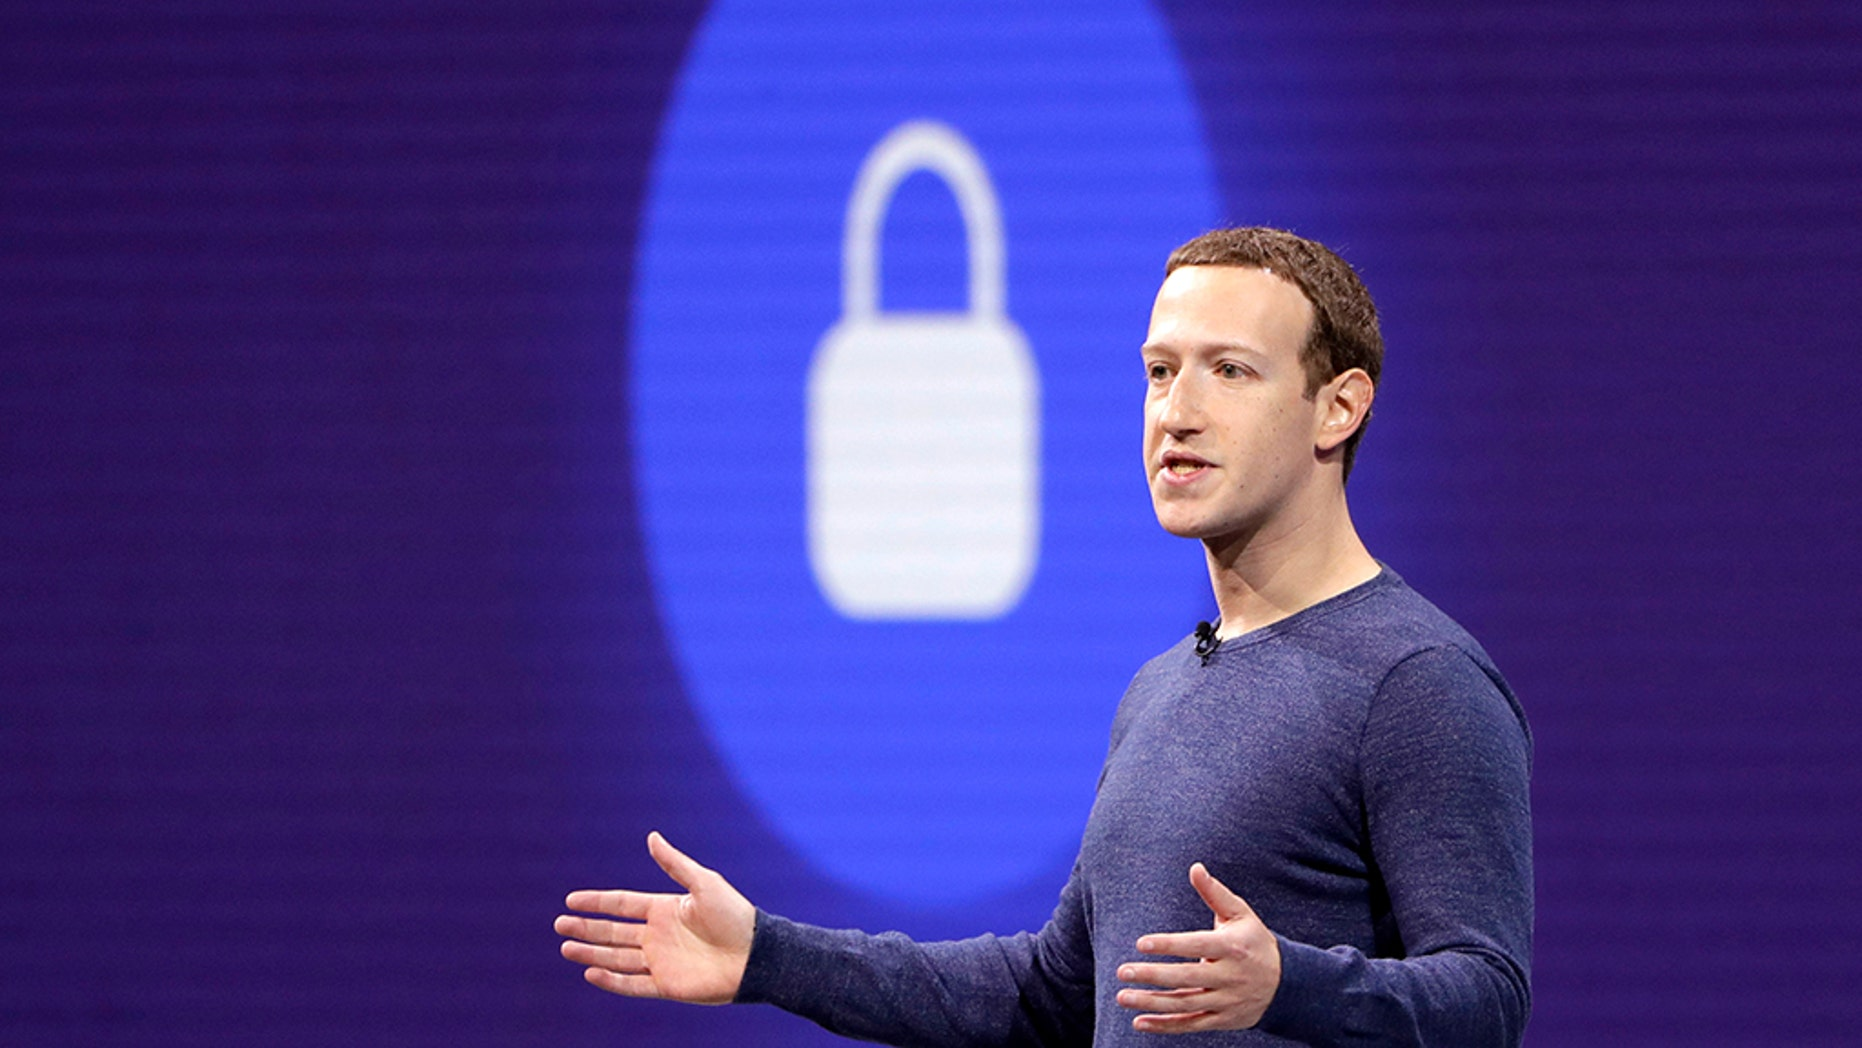 Facebook CEO Mark Zuckerberg has come under scrutiny after the company admitted that Russian agents ran political influence operations on the social network in 2016.